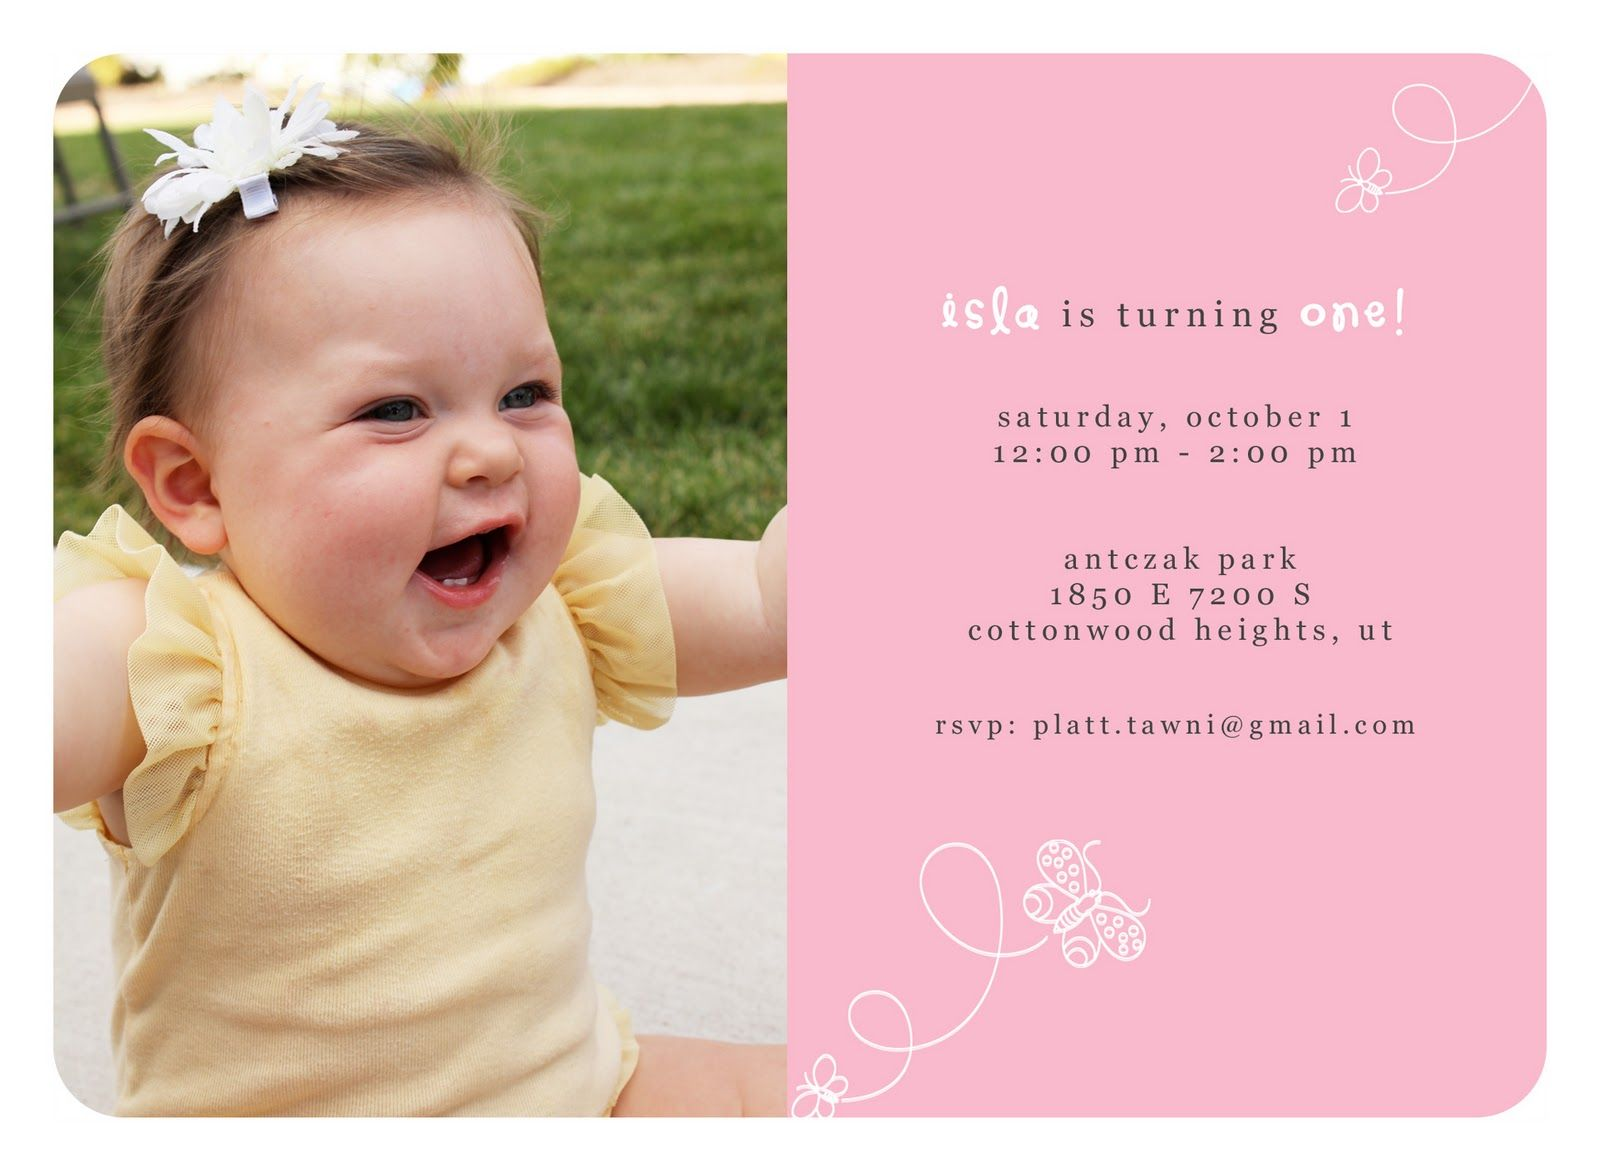 Download Now St Wording Birthday Invitations Ideas FREE - First birthday invitations girl online